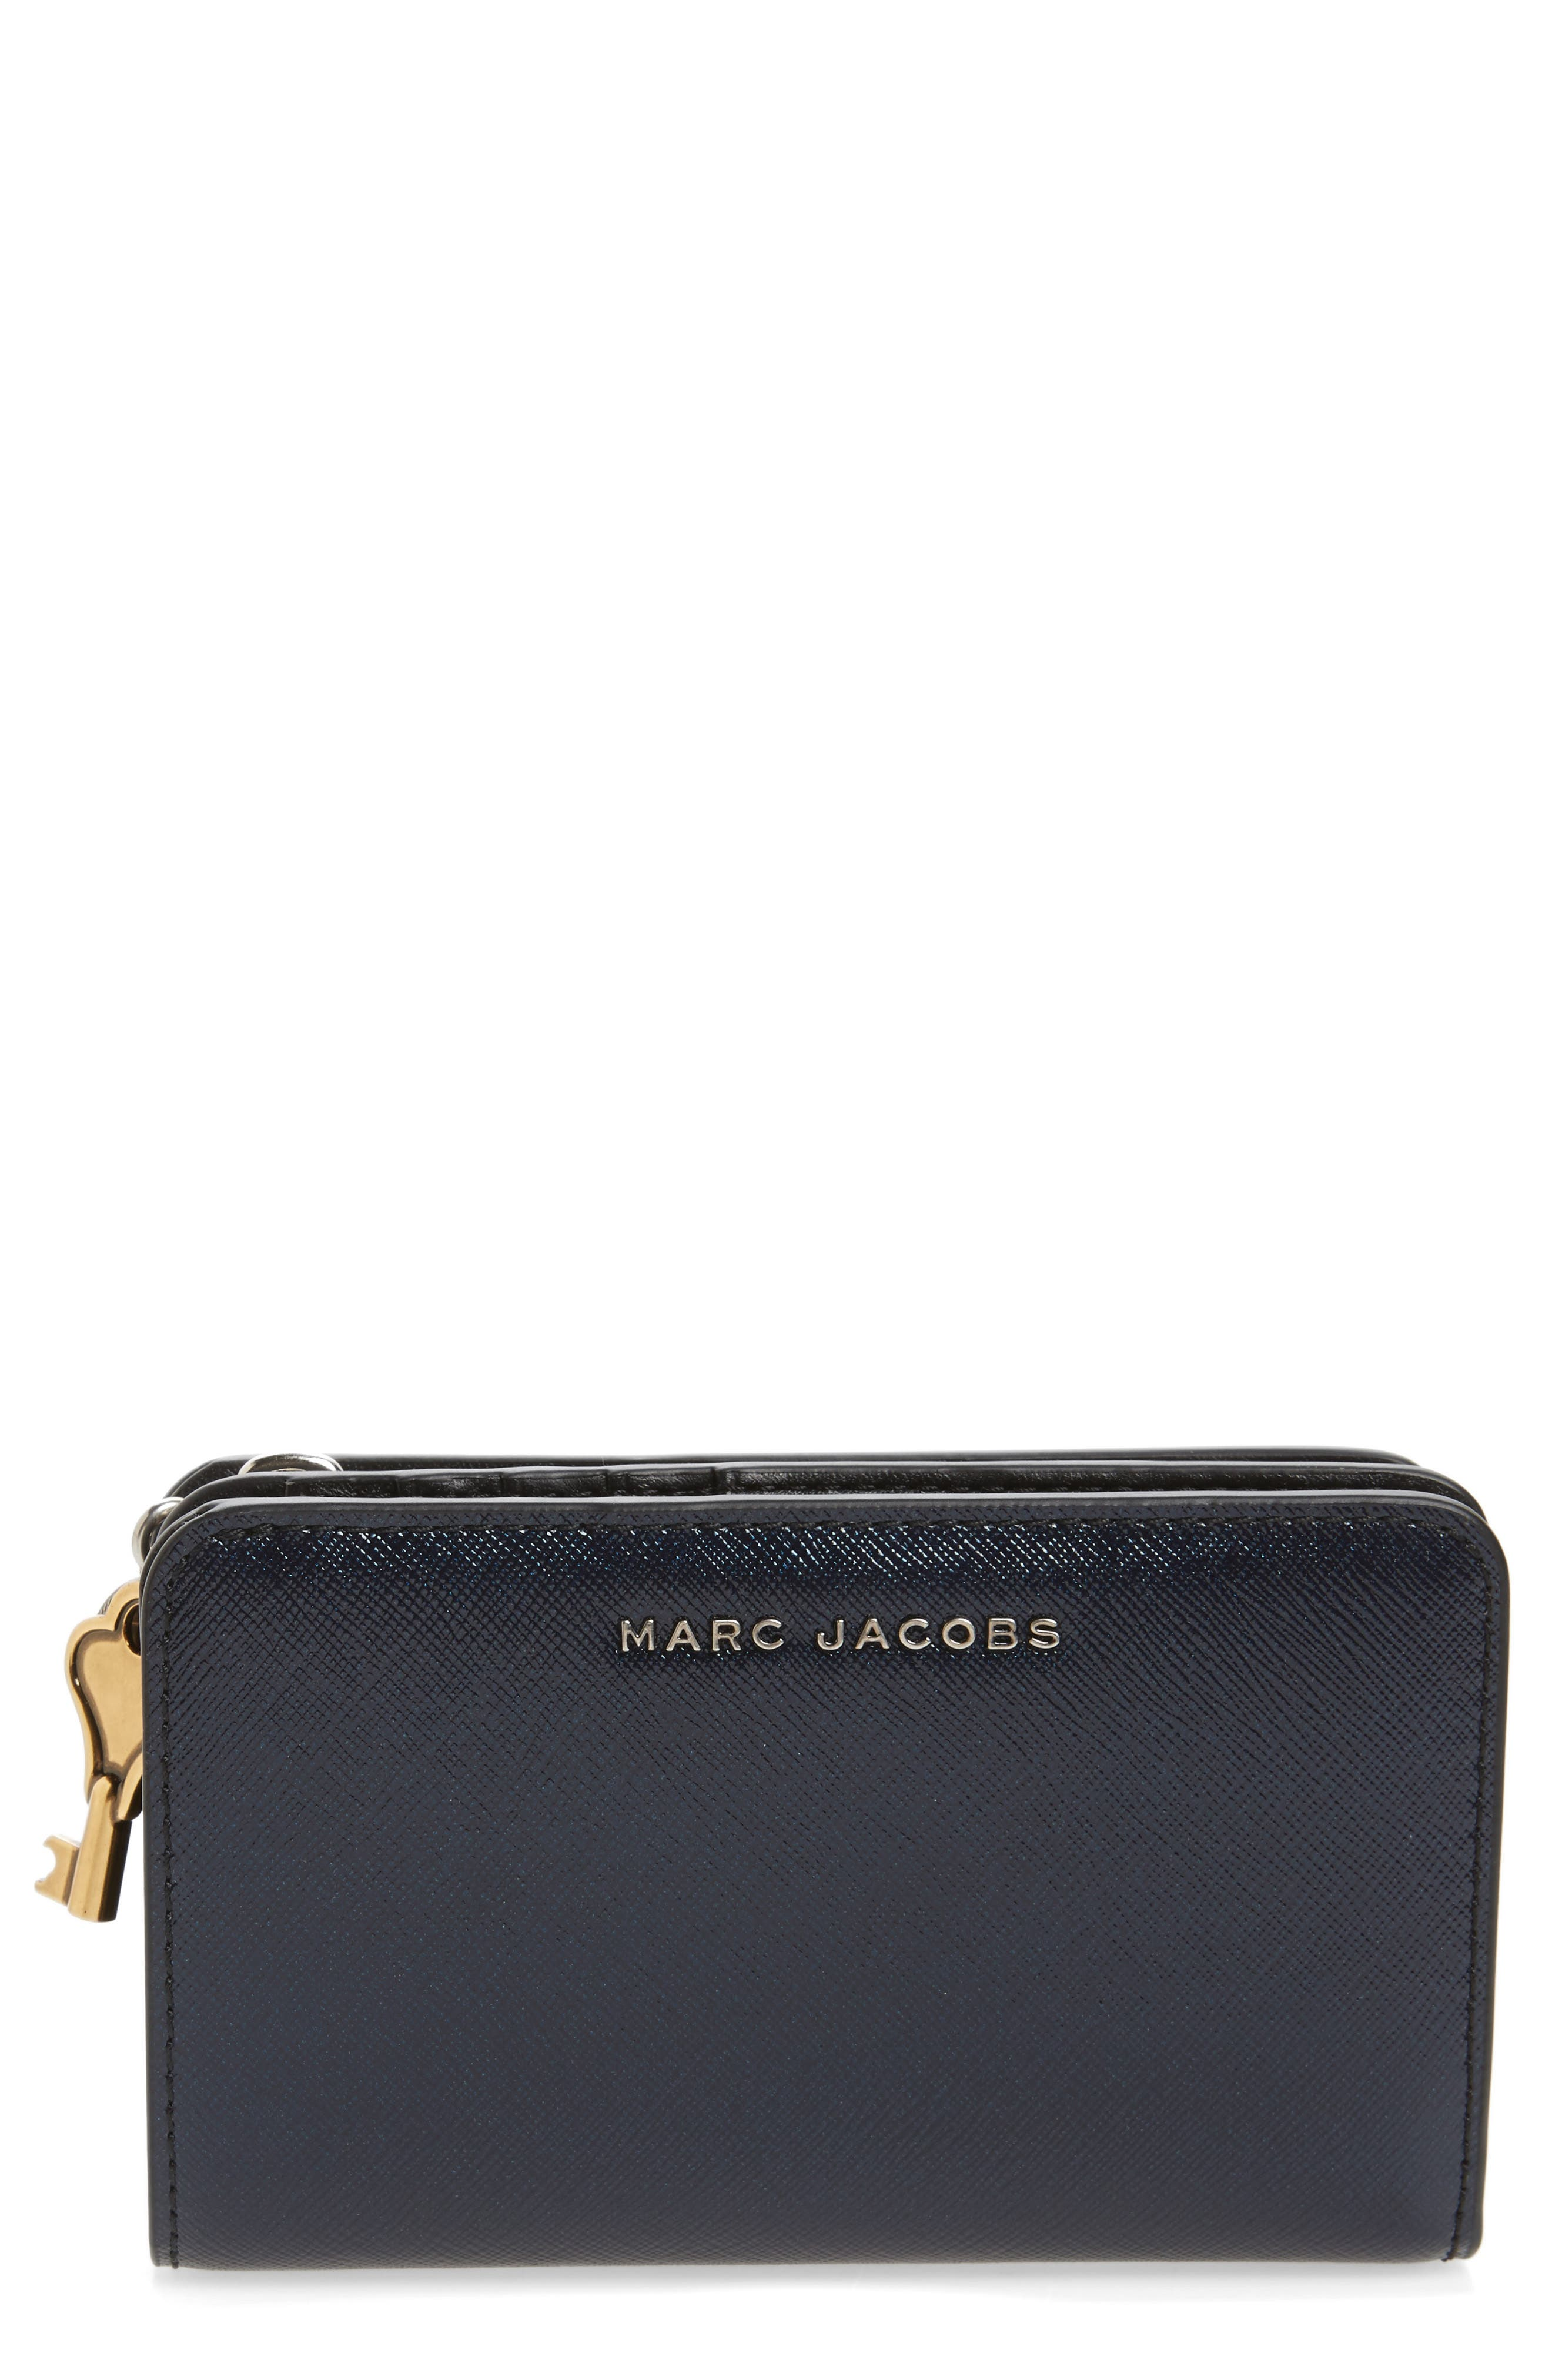 MARC JACOBS,                             Saffiano Leather Compact Wallet,                             Main thumbnail 1, color,                             410